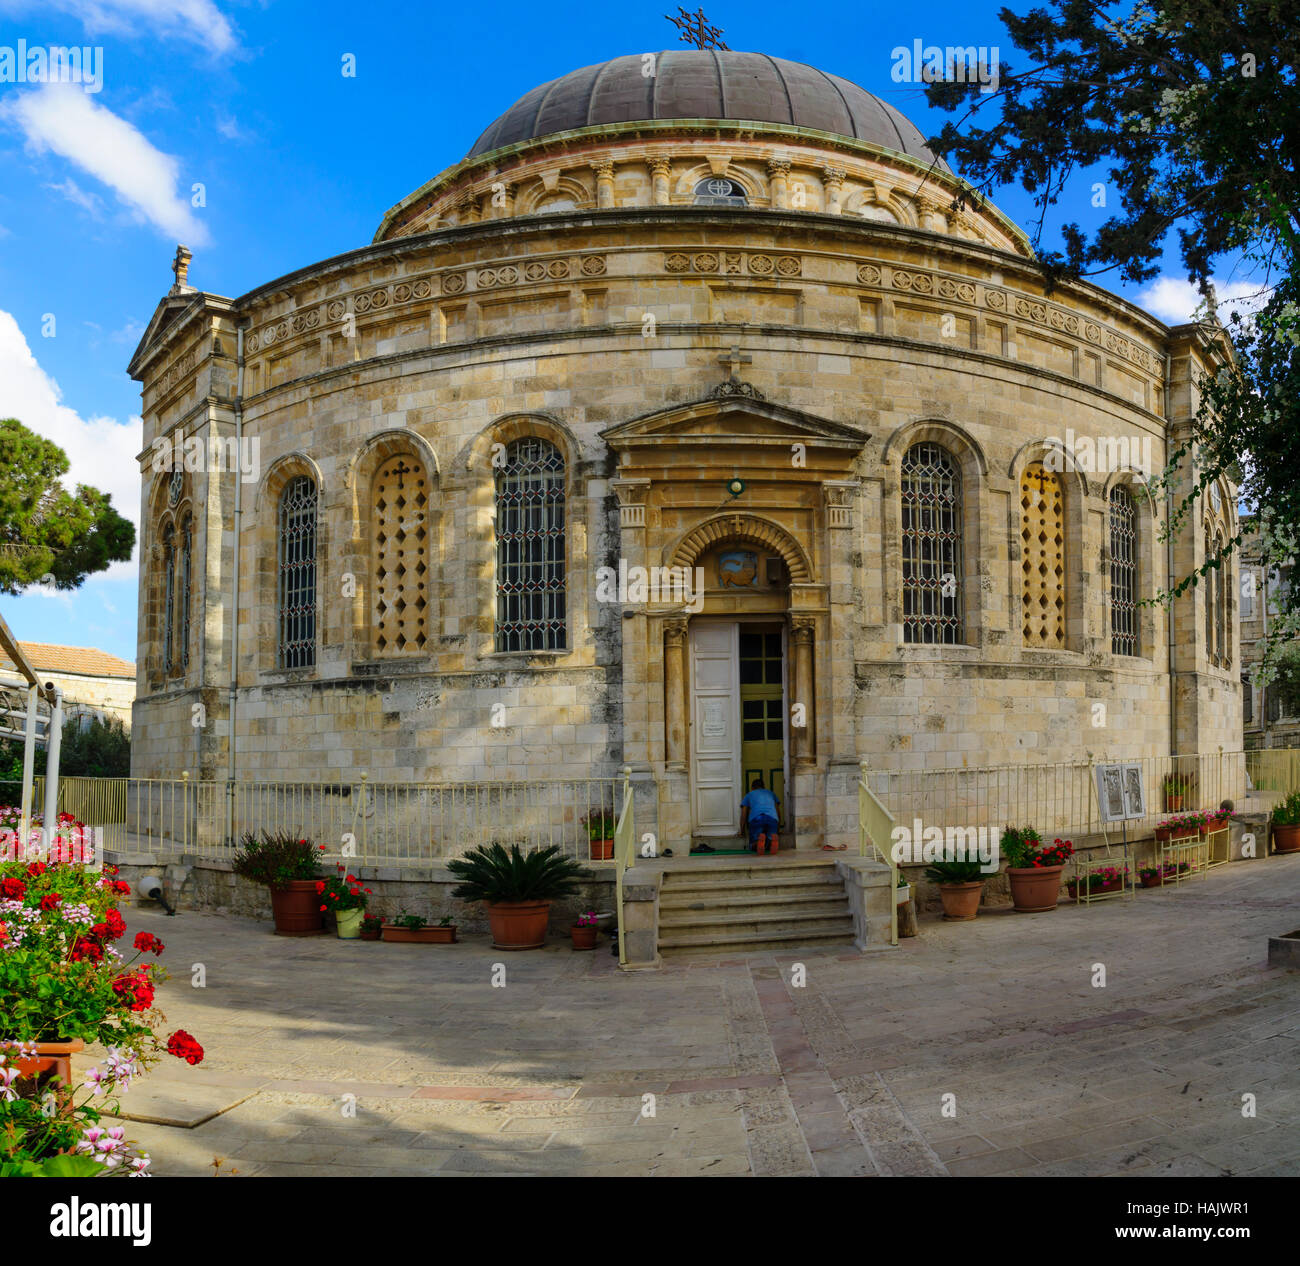 JERUSALEM, ISRAEL - SEPTEMBER 23, 2016: The Ethiopian Orthodox Tewahedo Church, with a prayer, in Jerusalem, Israel - Stock Image